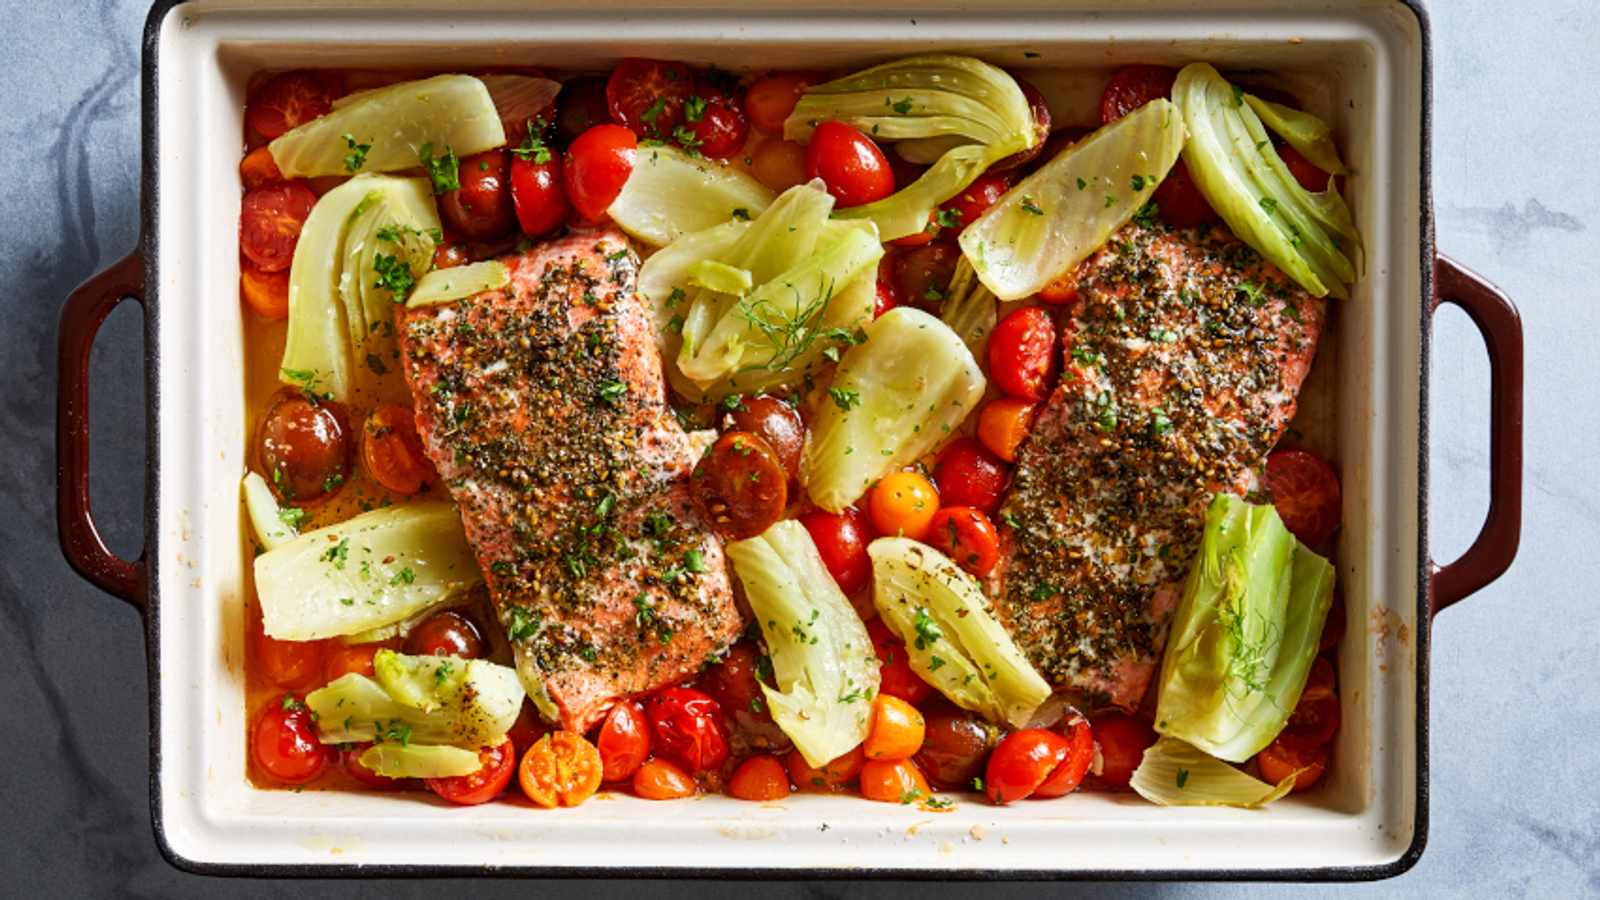 Roasted Salmon With Fennel and Tomatoes